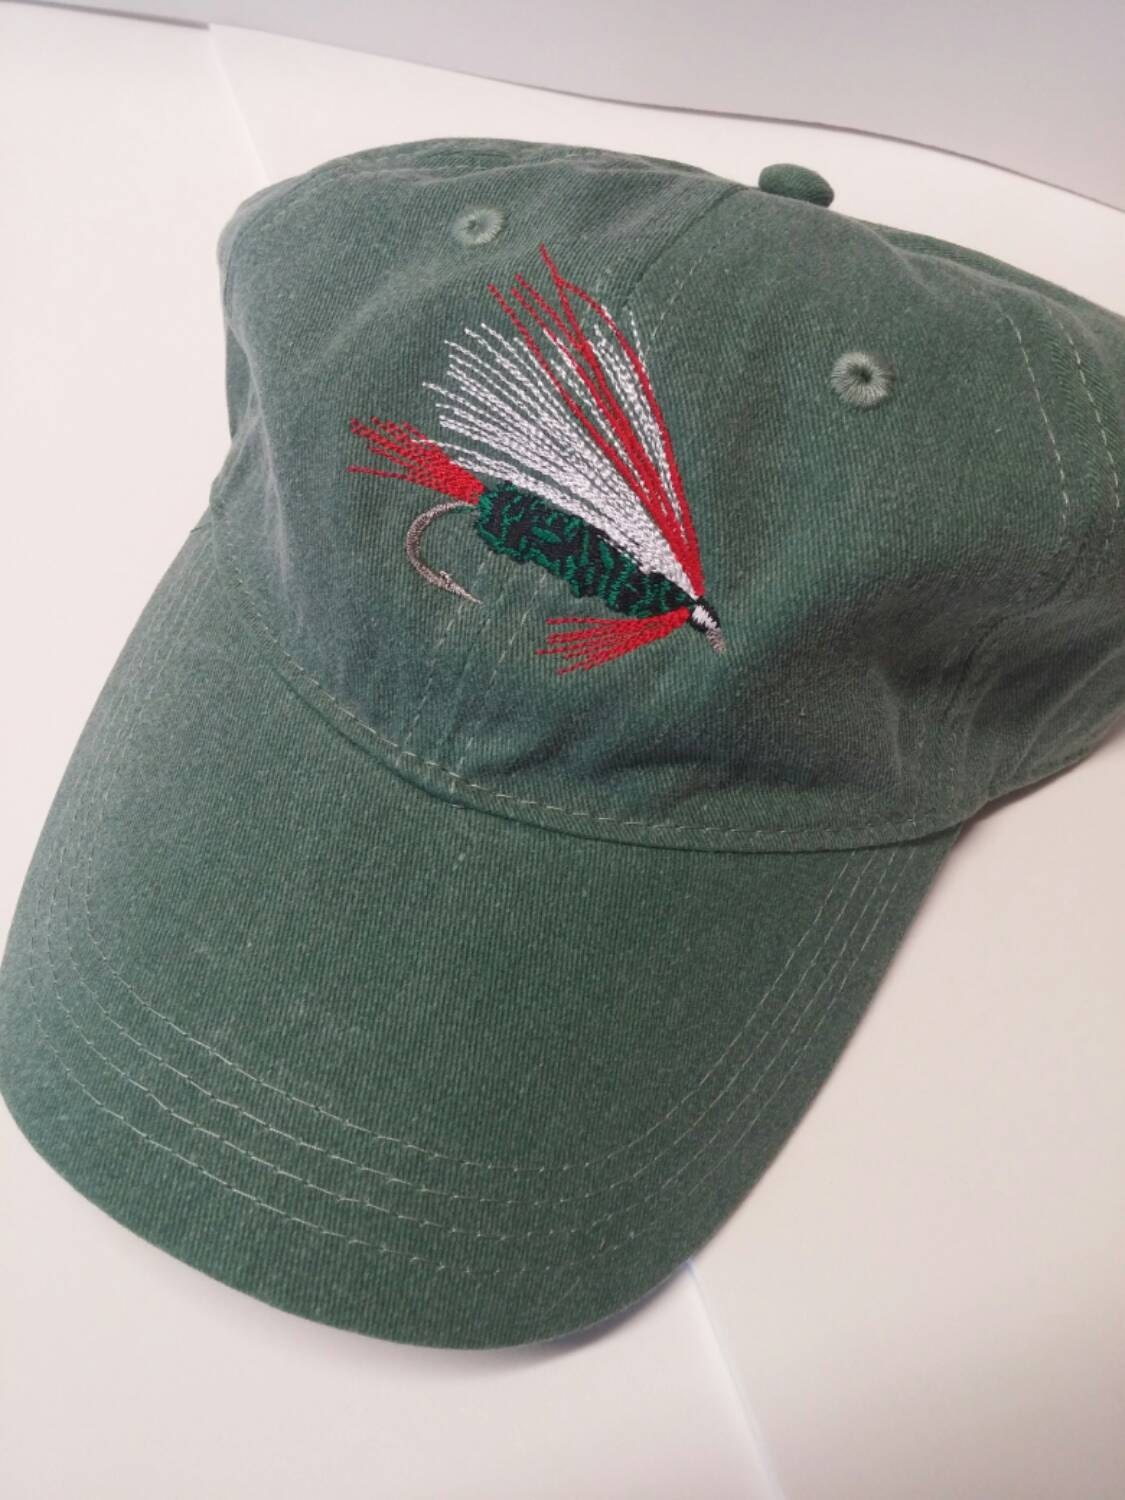 Fly fishing ball cap hat for Fishing ball caps